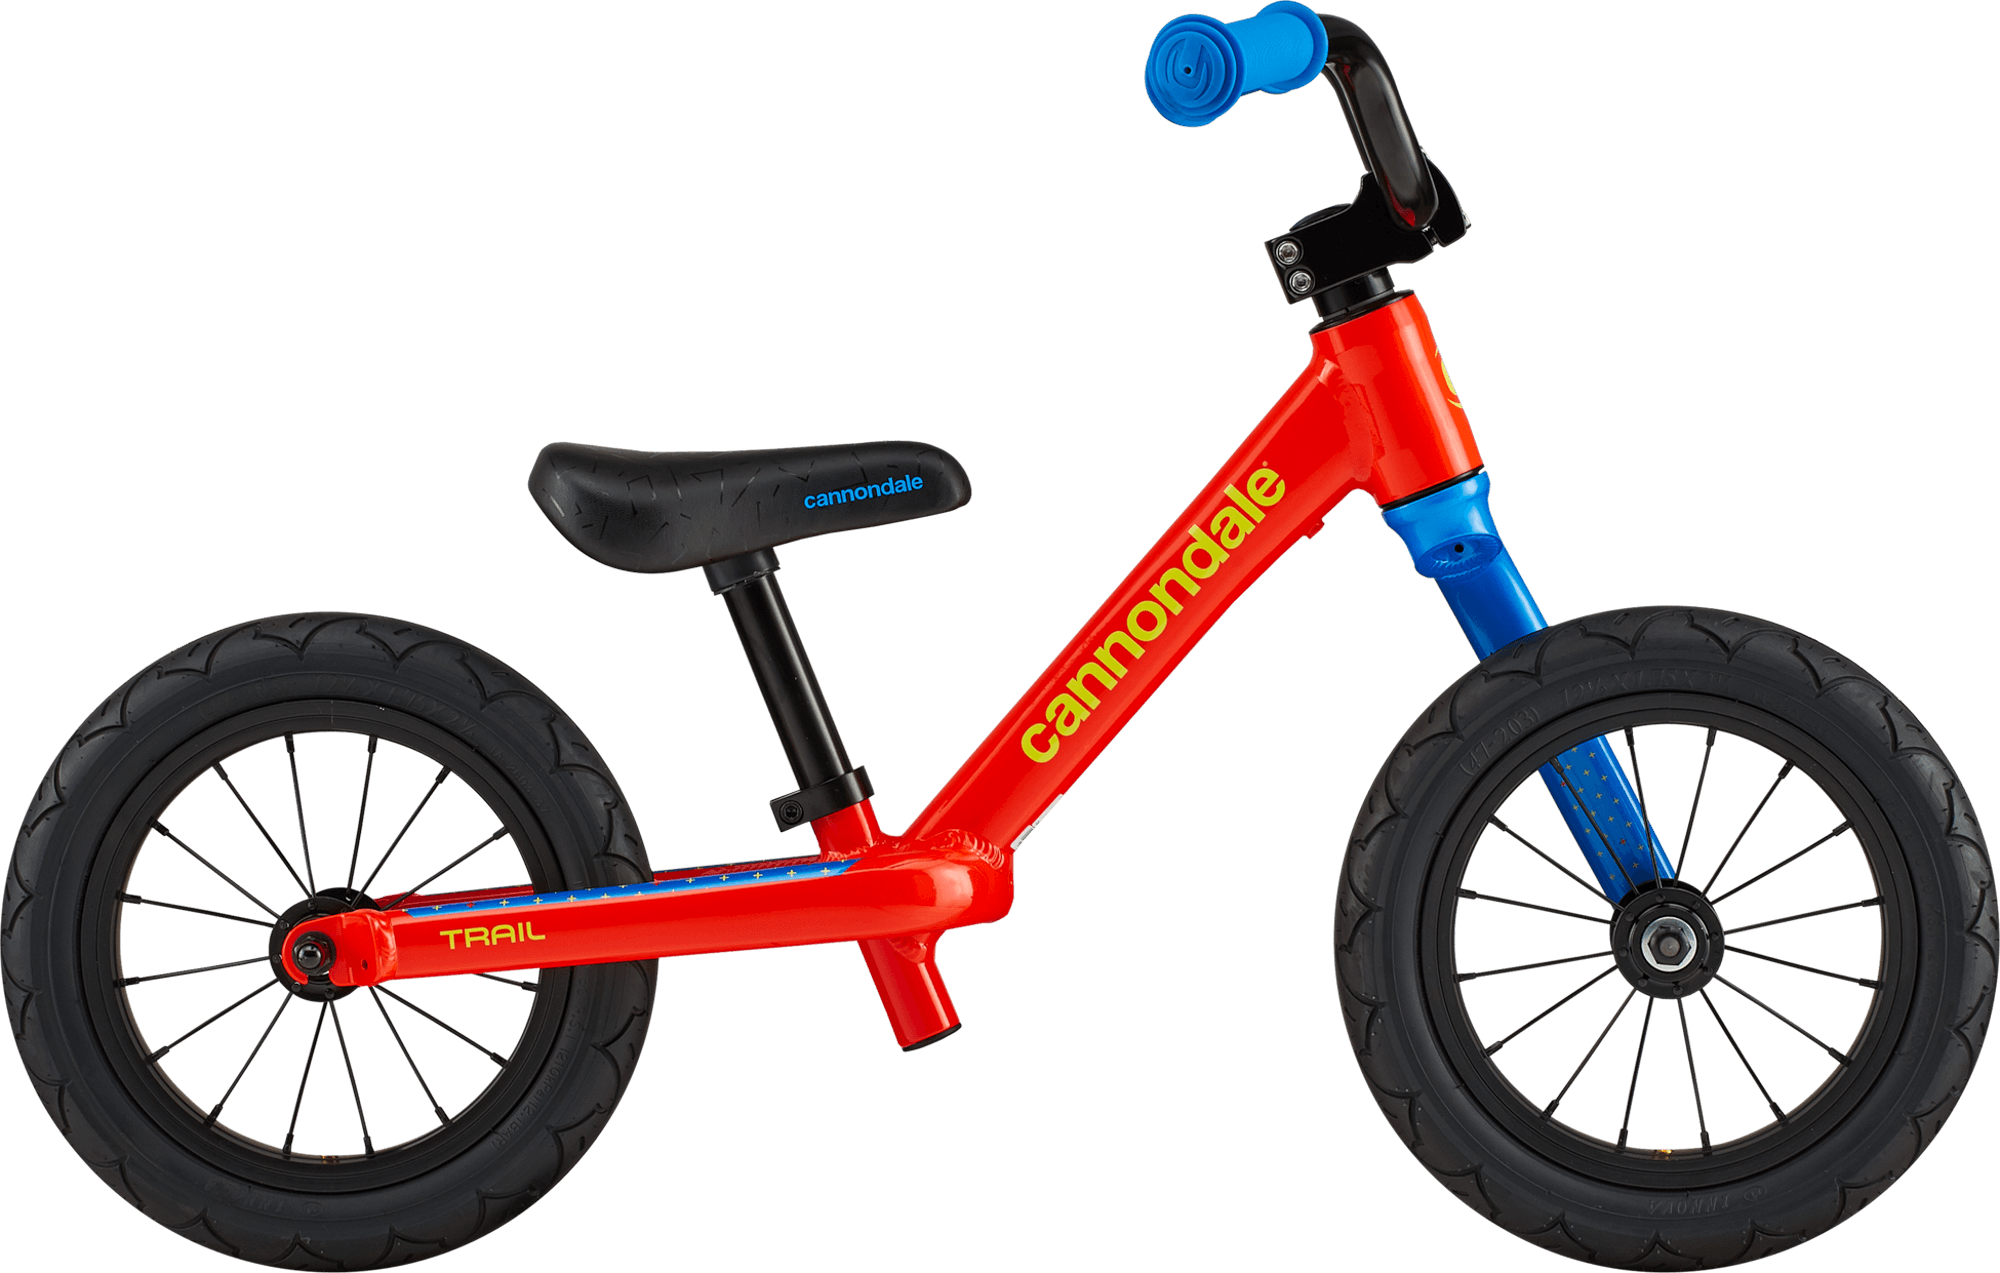 Cannondale 12 M Kids Trail Balance 2021 - Cycles Galleria Melbourne